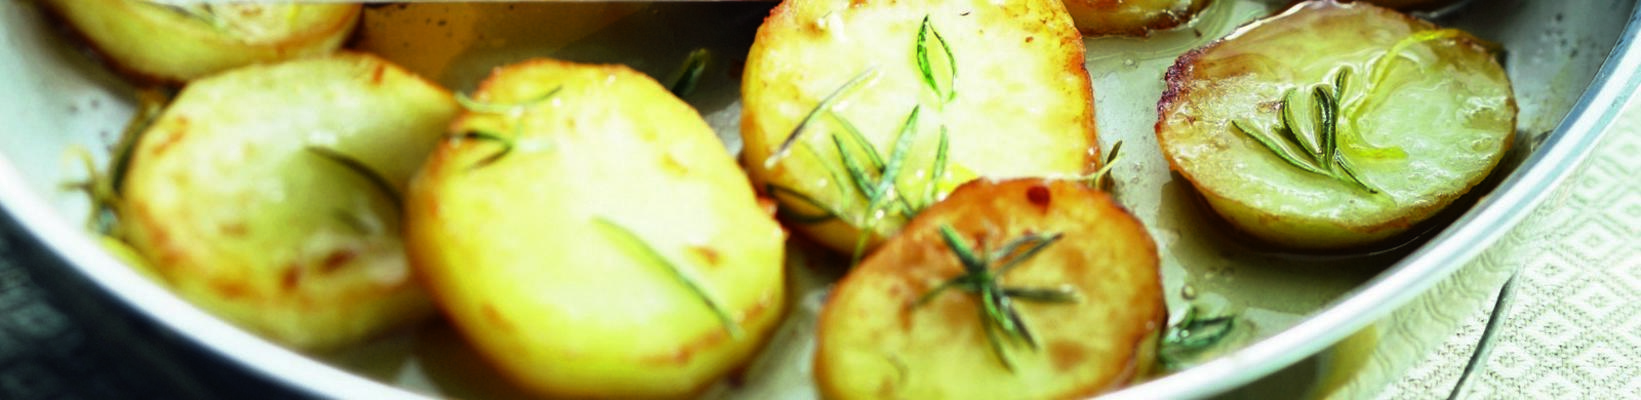 thick potato slices with butter and lemon